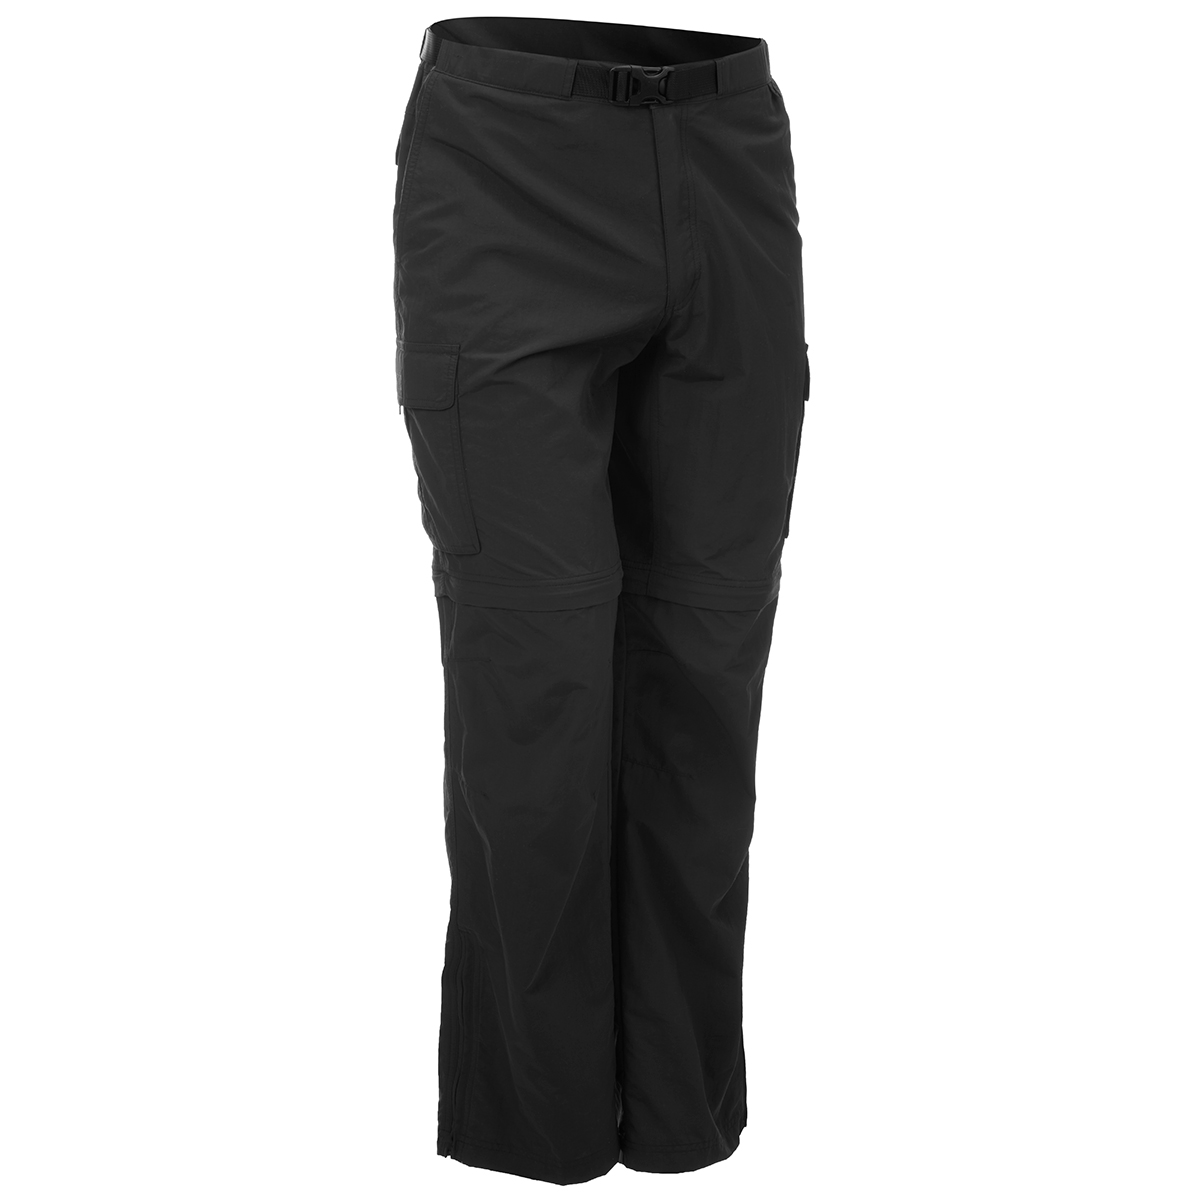 Ems Men's Camp Cargo Zip-Off Pants - Black, 32/32